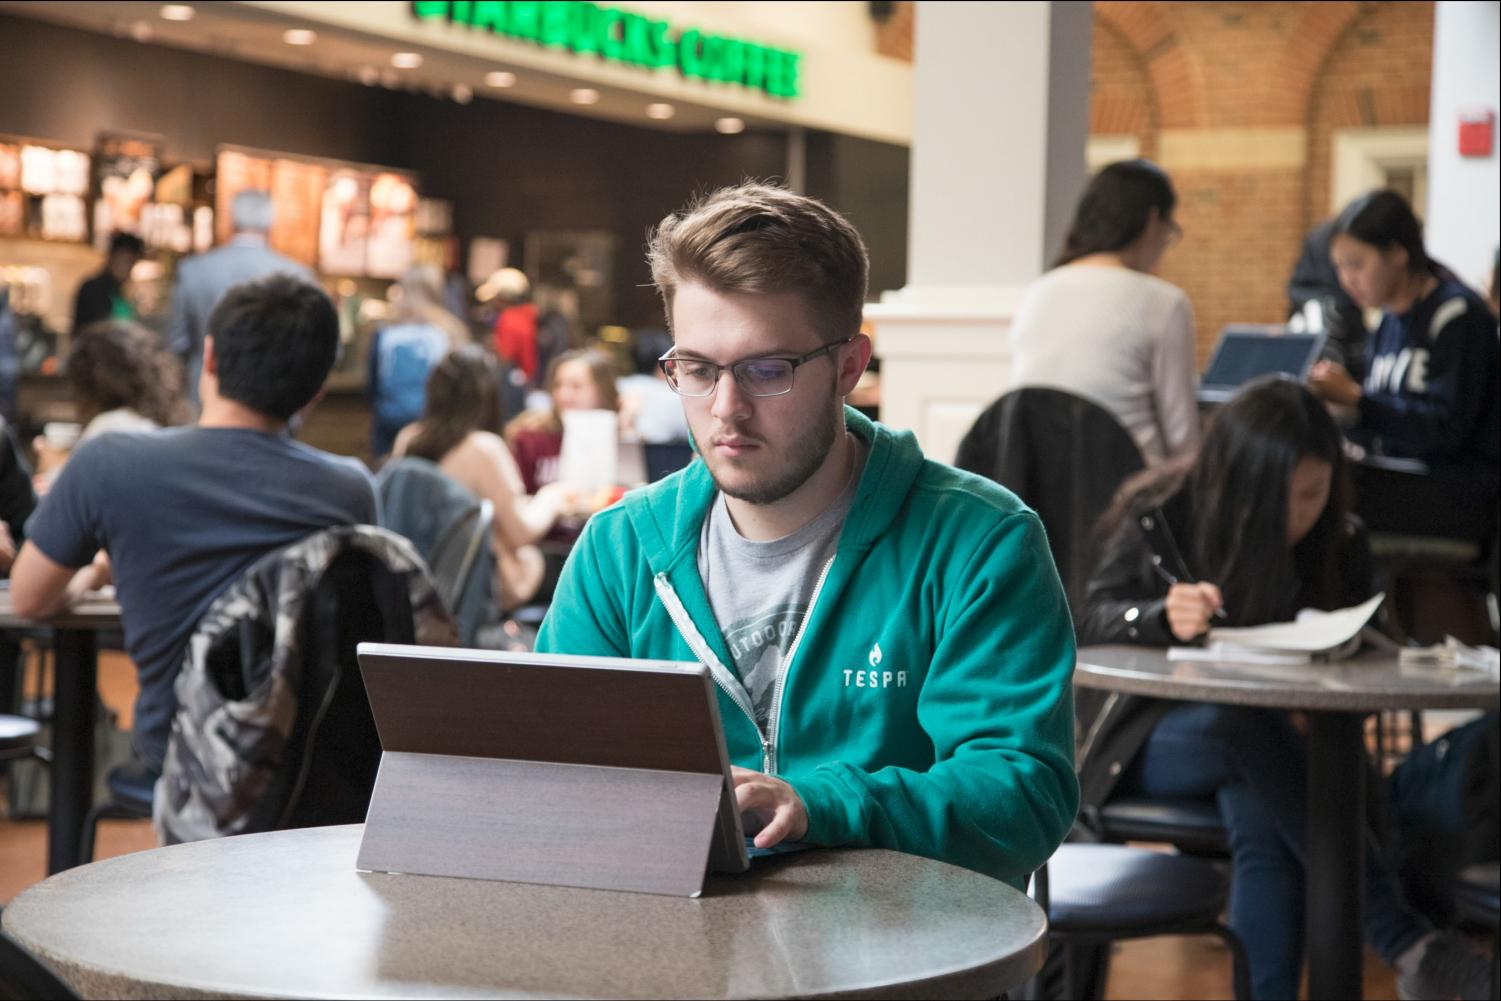 David Koruna, the president of Illini Esports, completes administrative work in Courtyard Cafe on Oct. 23.